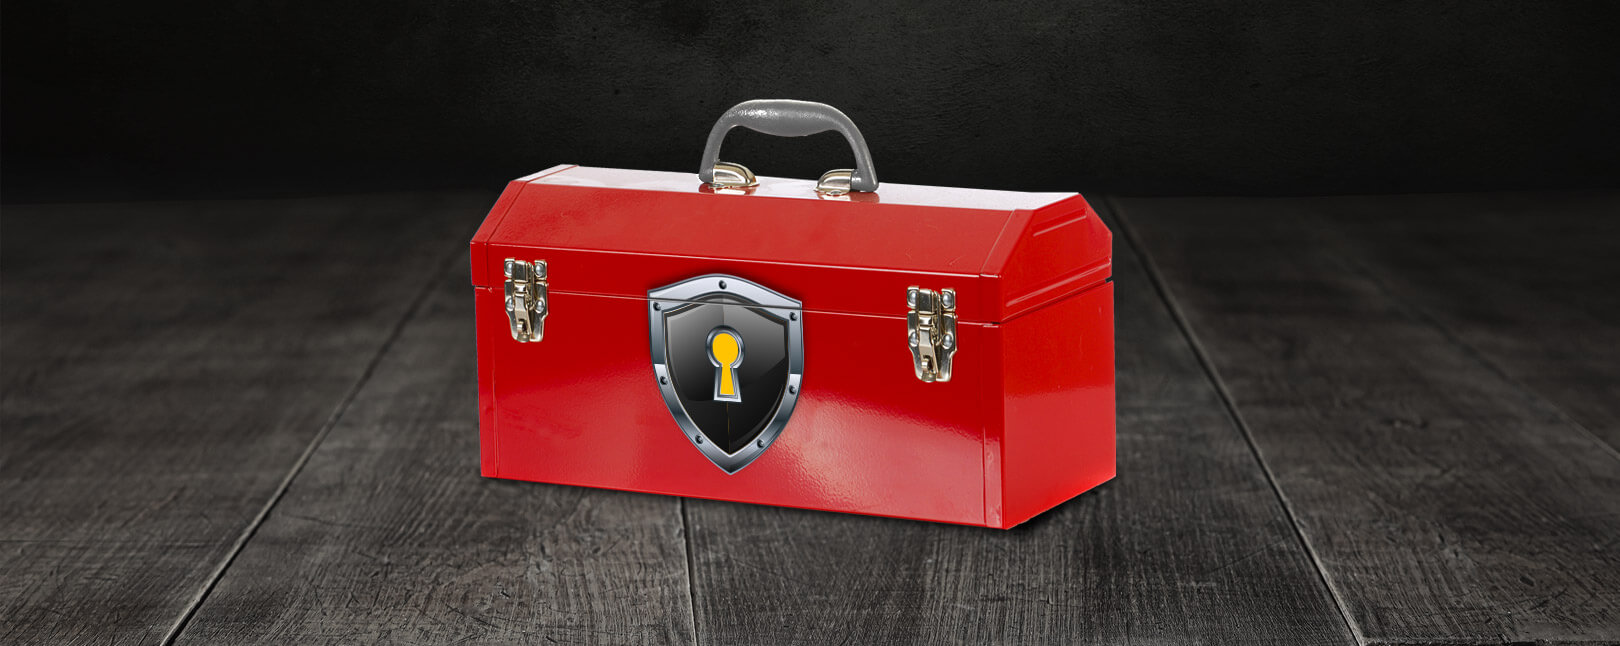 Fraud Prevention Tools